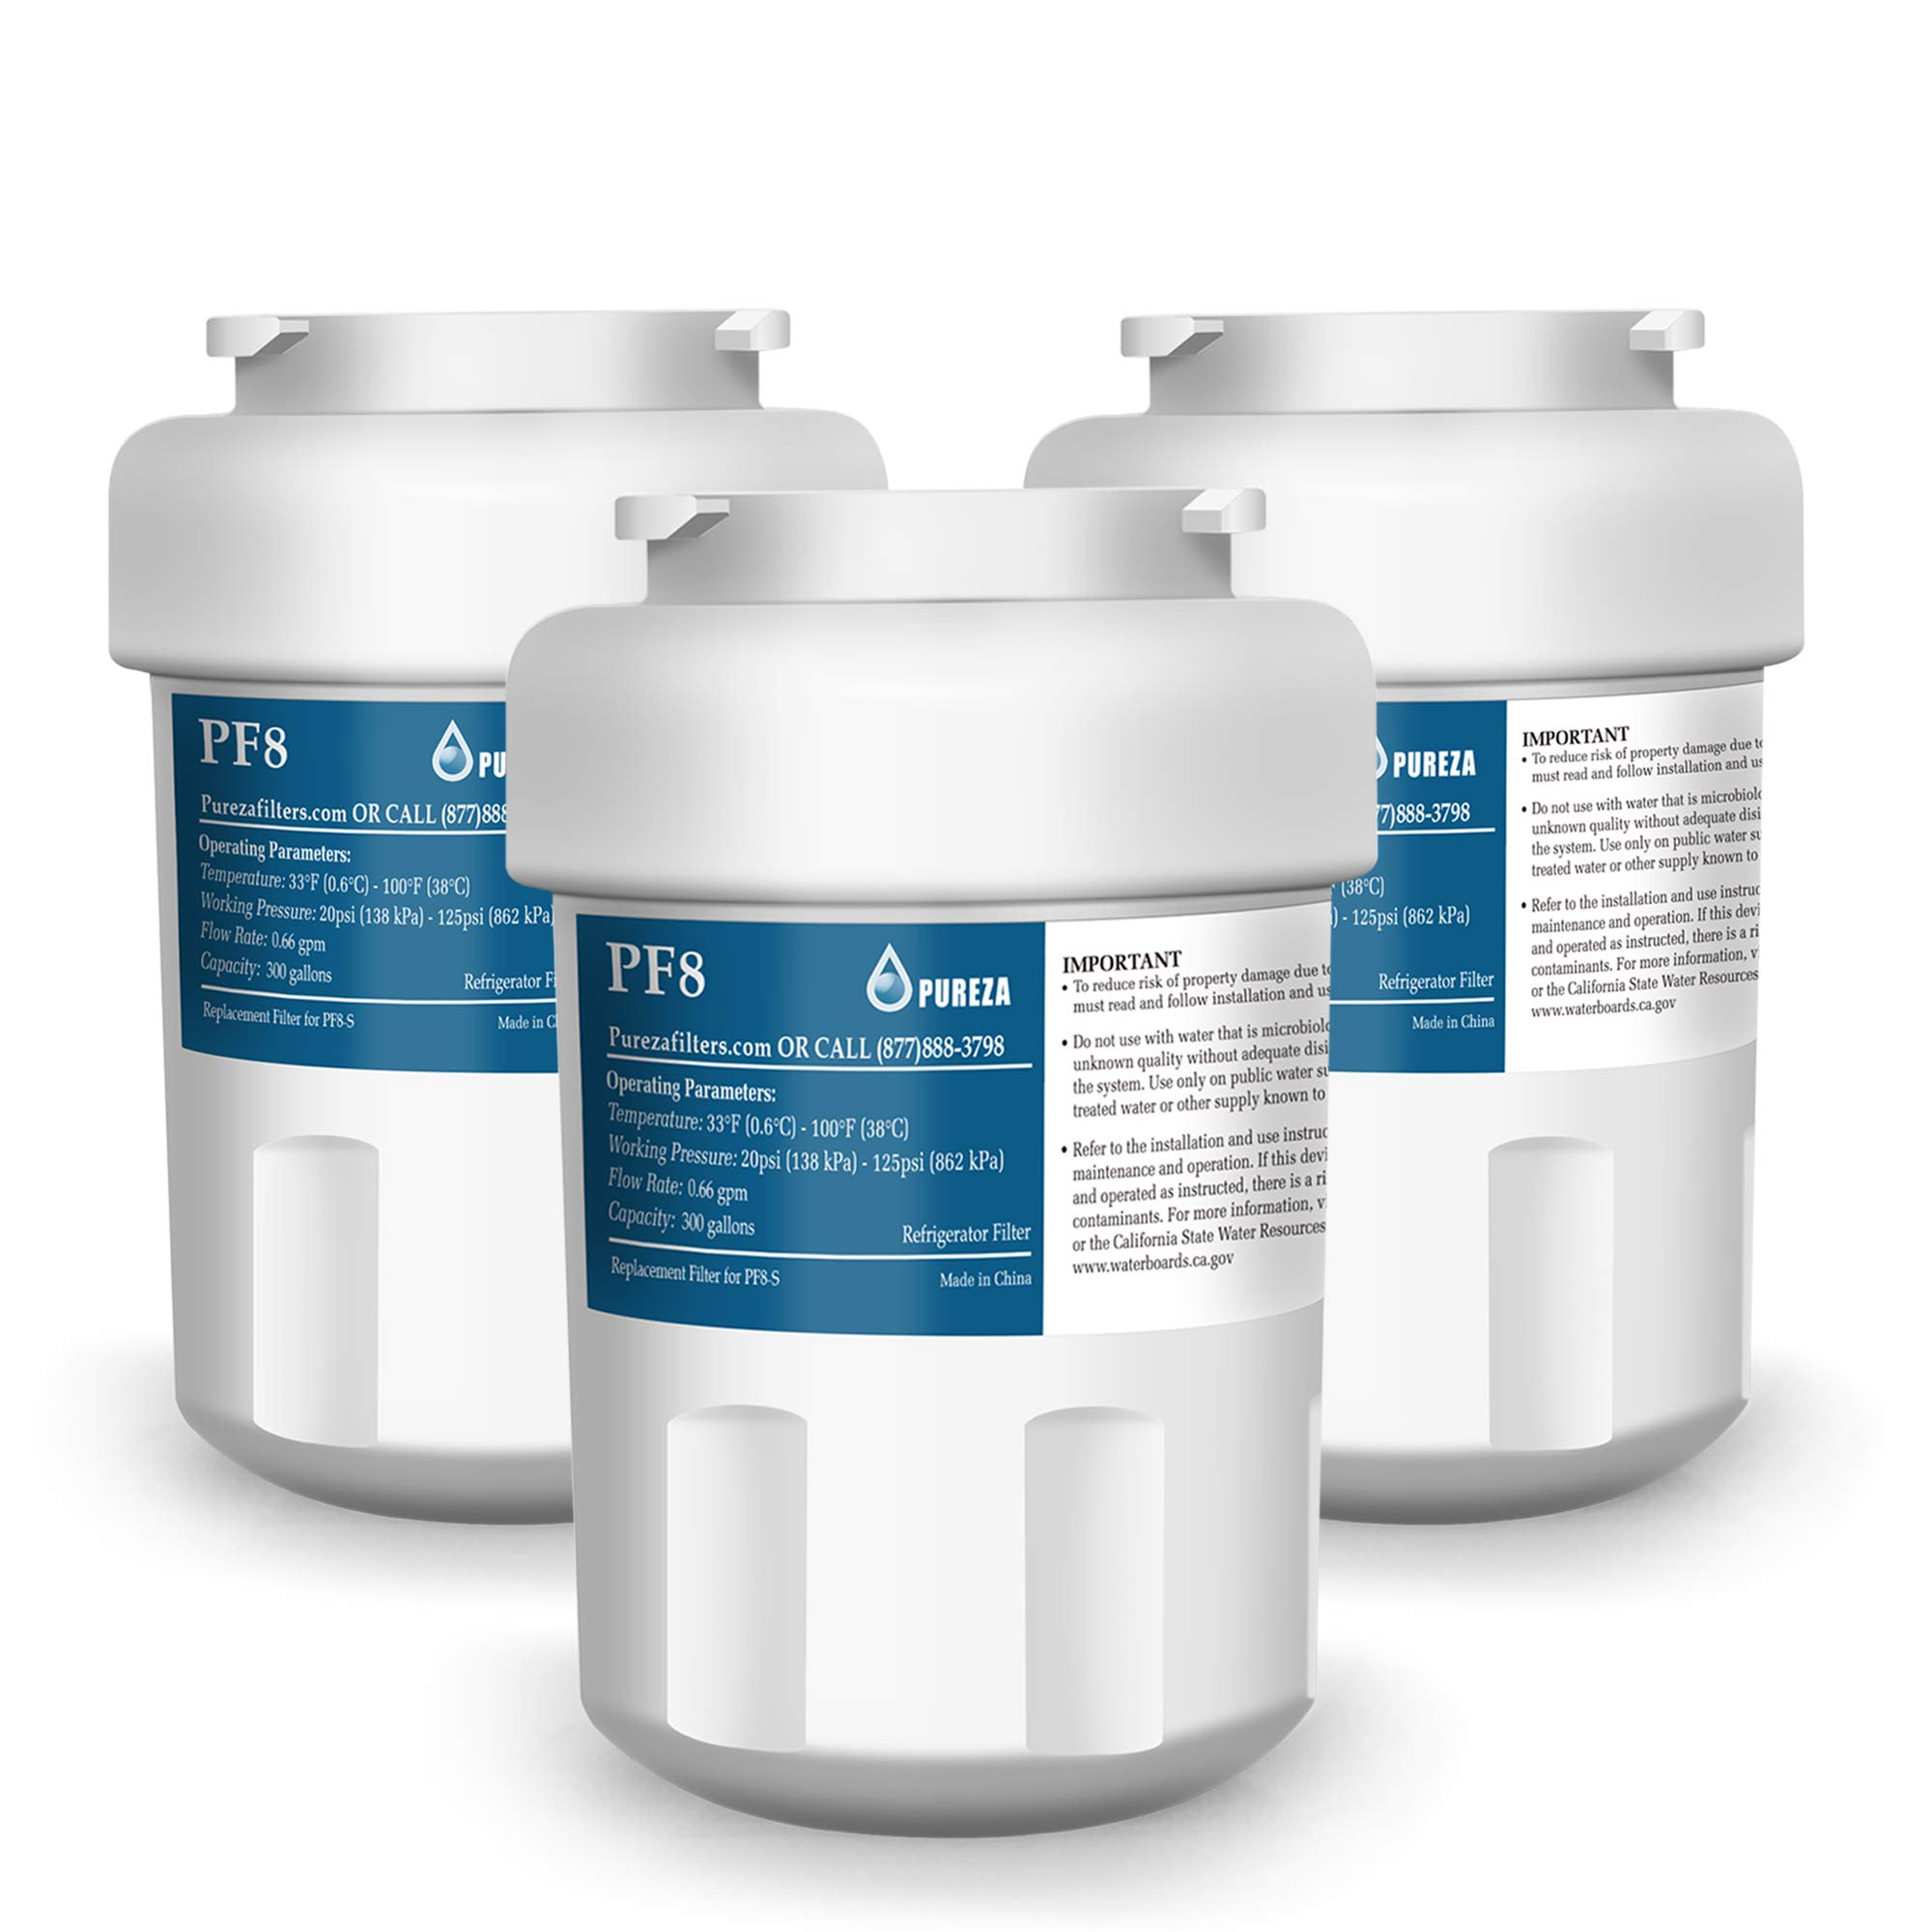 Refrigerator Water Filter Replacement for GE MWF, NSF 42 Certification, SmartWater, MWFA, MWFP, GWF, GWFA, Kenmore 9991, 46-9991, 469991, by Pureza Filter, Pack of 3 by Pureza filters